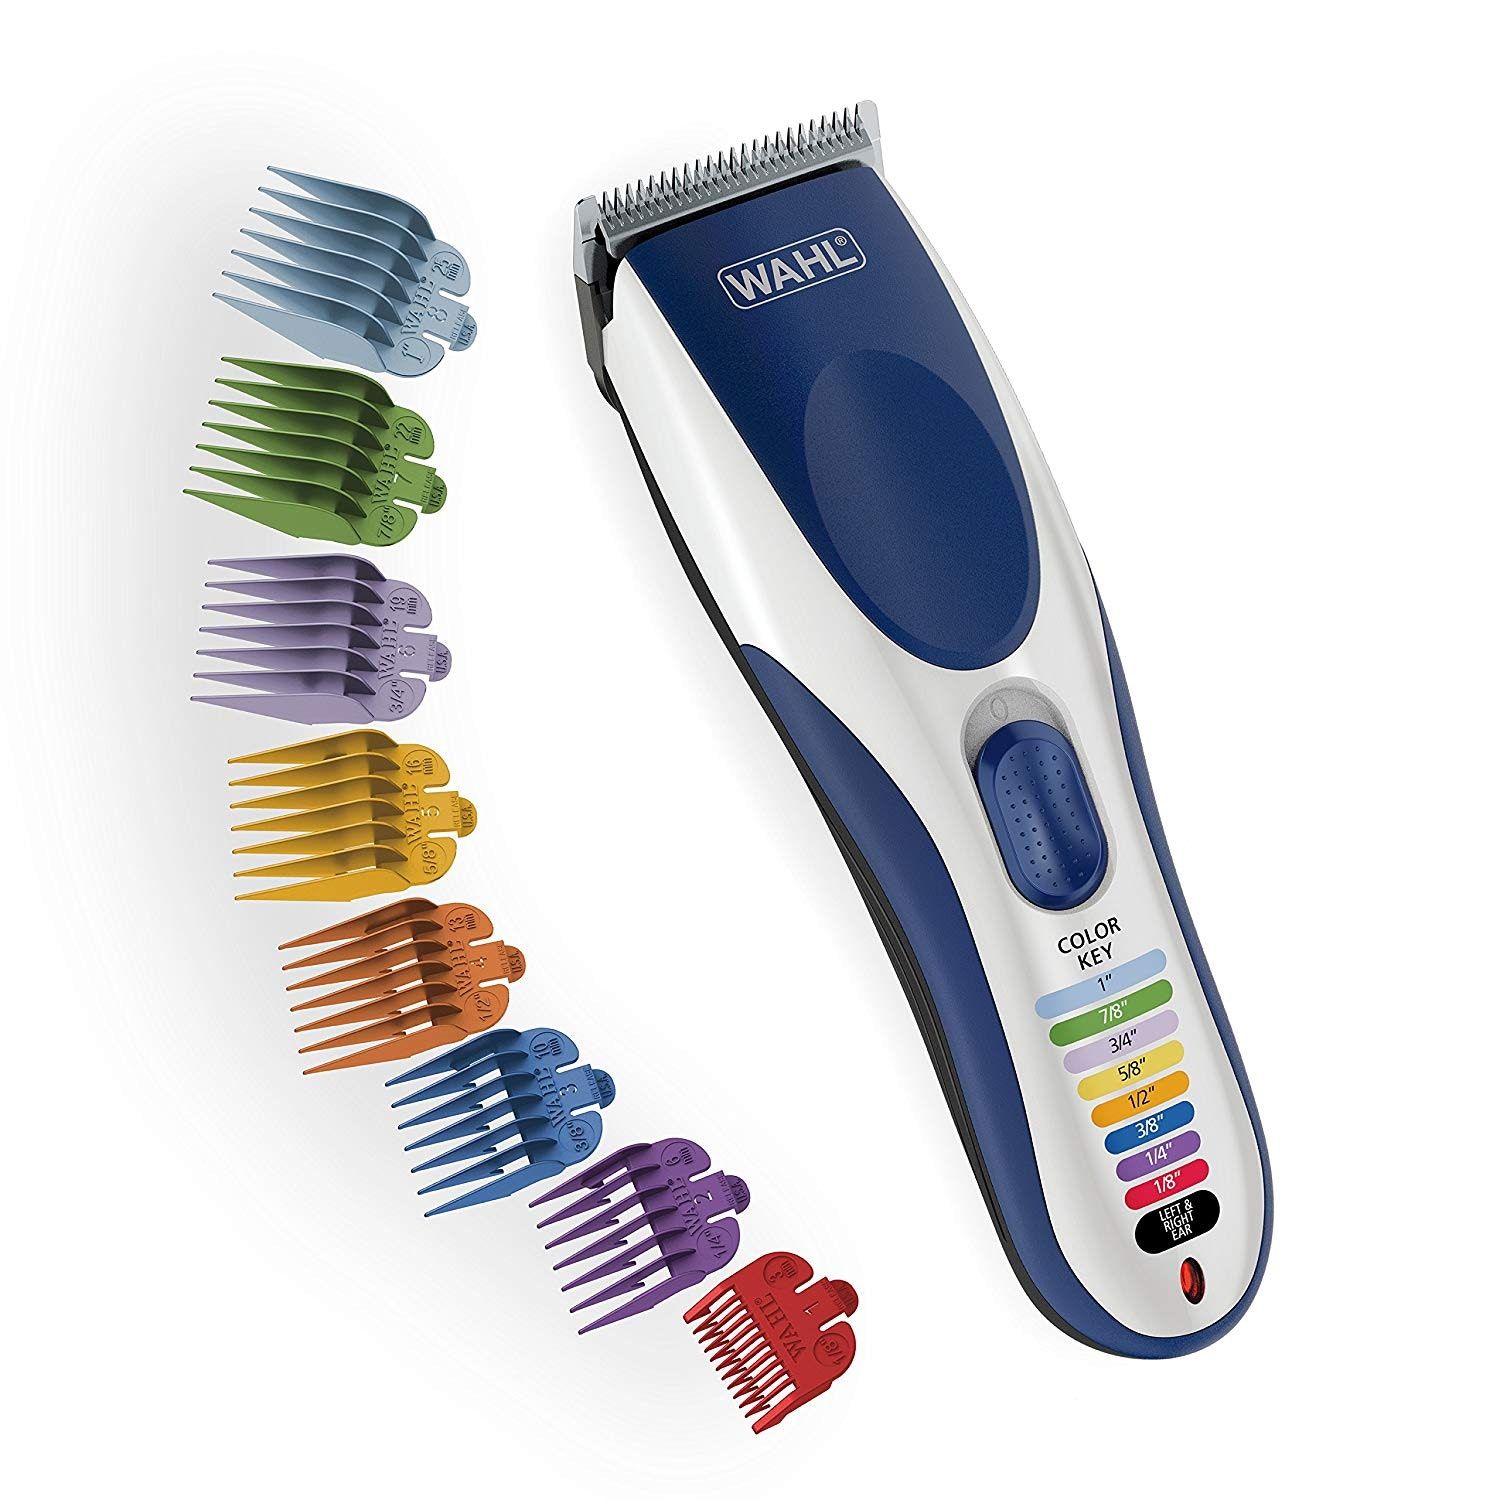 The Highest Rated Hair Clippers to Cut Your Hair at Home